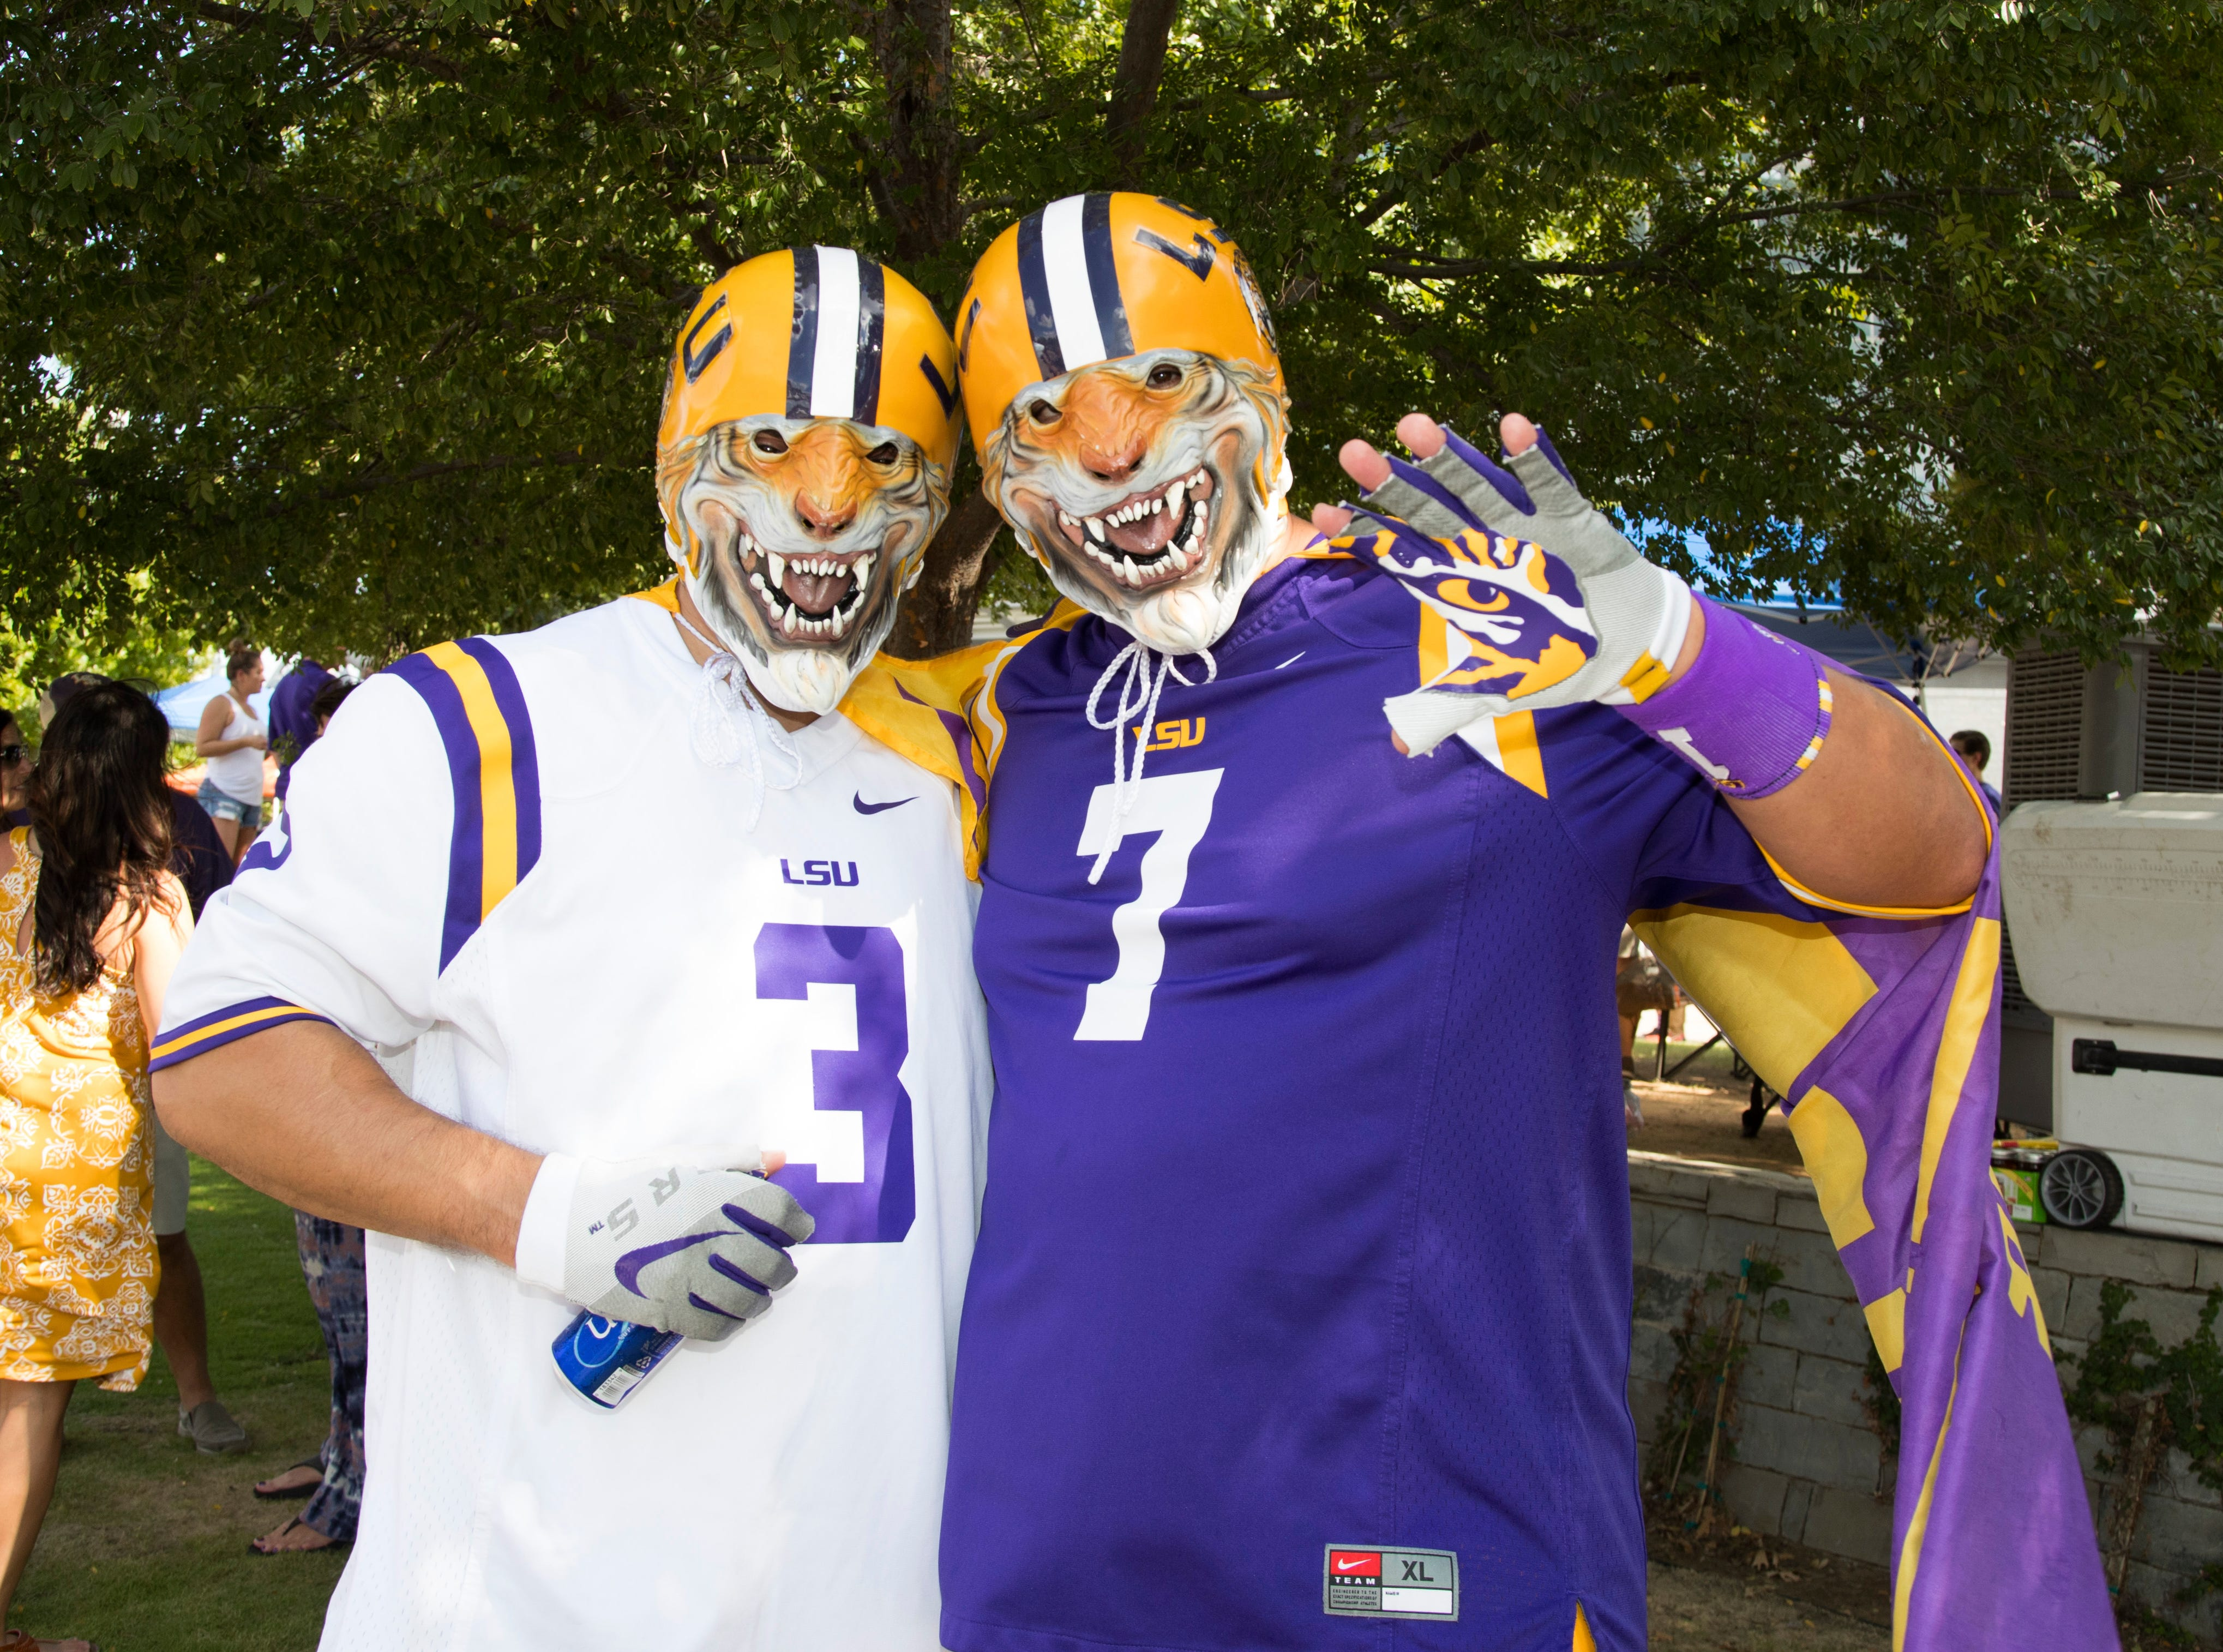 Week 1: LSU Tigers fans Chris Langley (left) and Jonathan Cernek pose for a photo before the game against the Miami Hurricanes at AT&T Stadium.